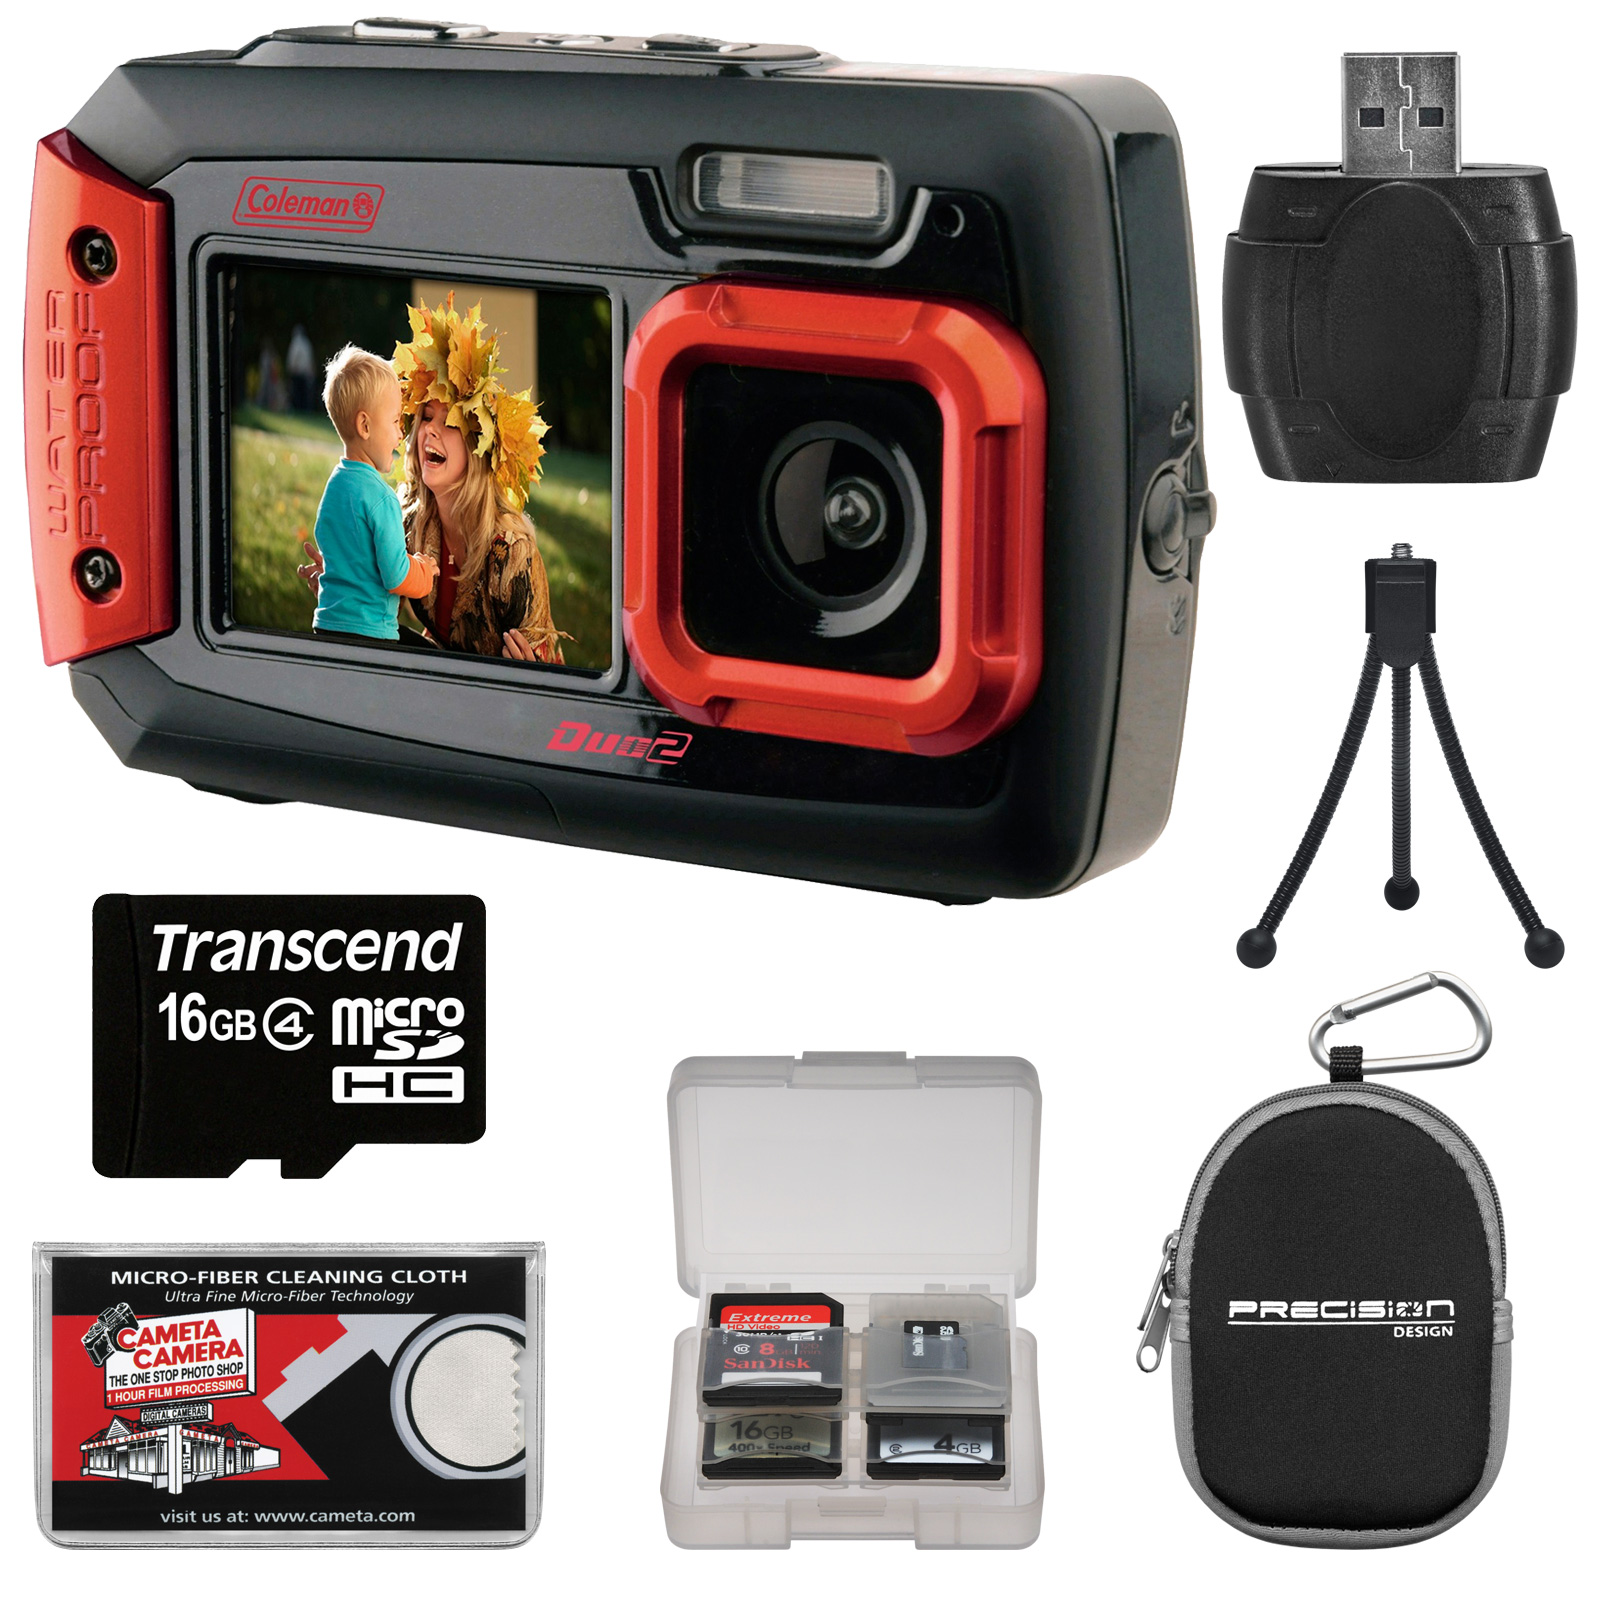 Coleman Duo 2V9WP Dual Screen Shock & Waterproof Digital Camera (Red) with 16GB Card + Case + Kit